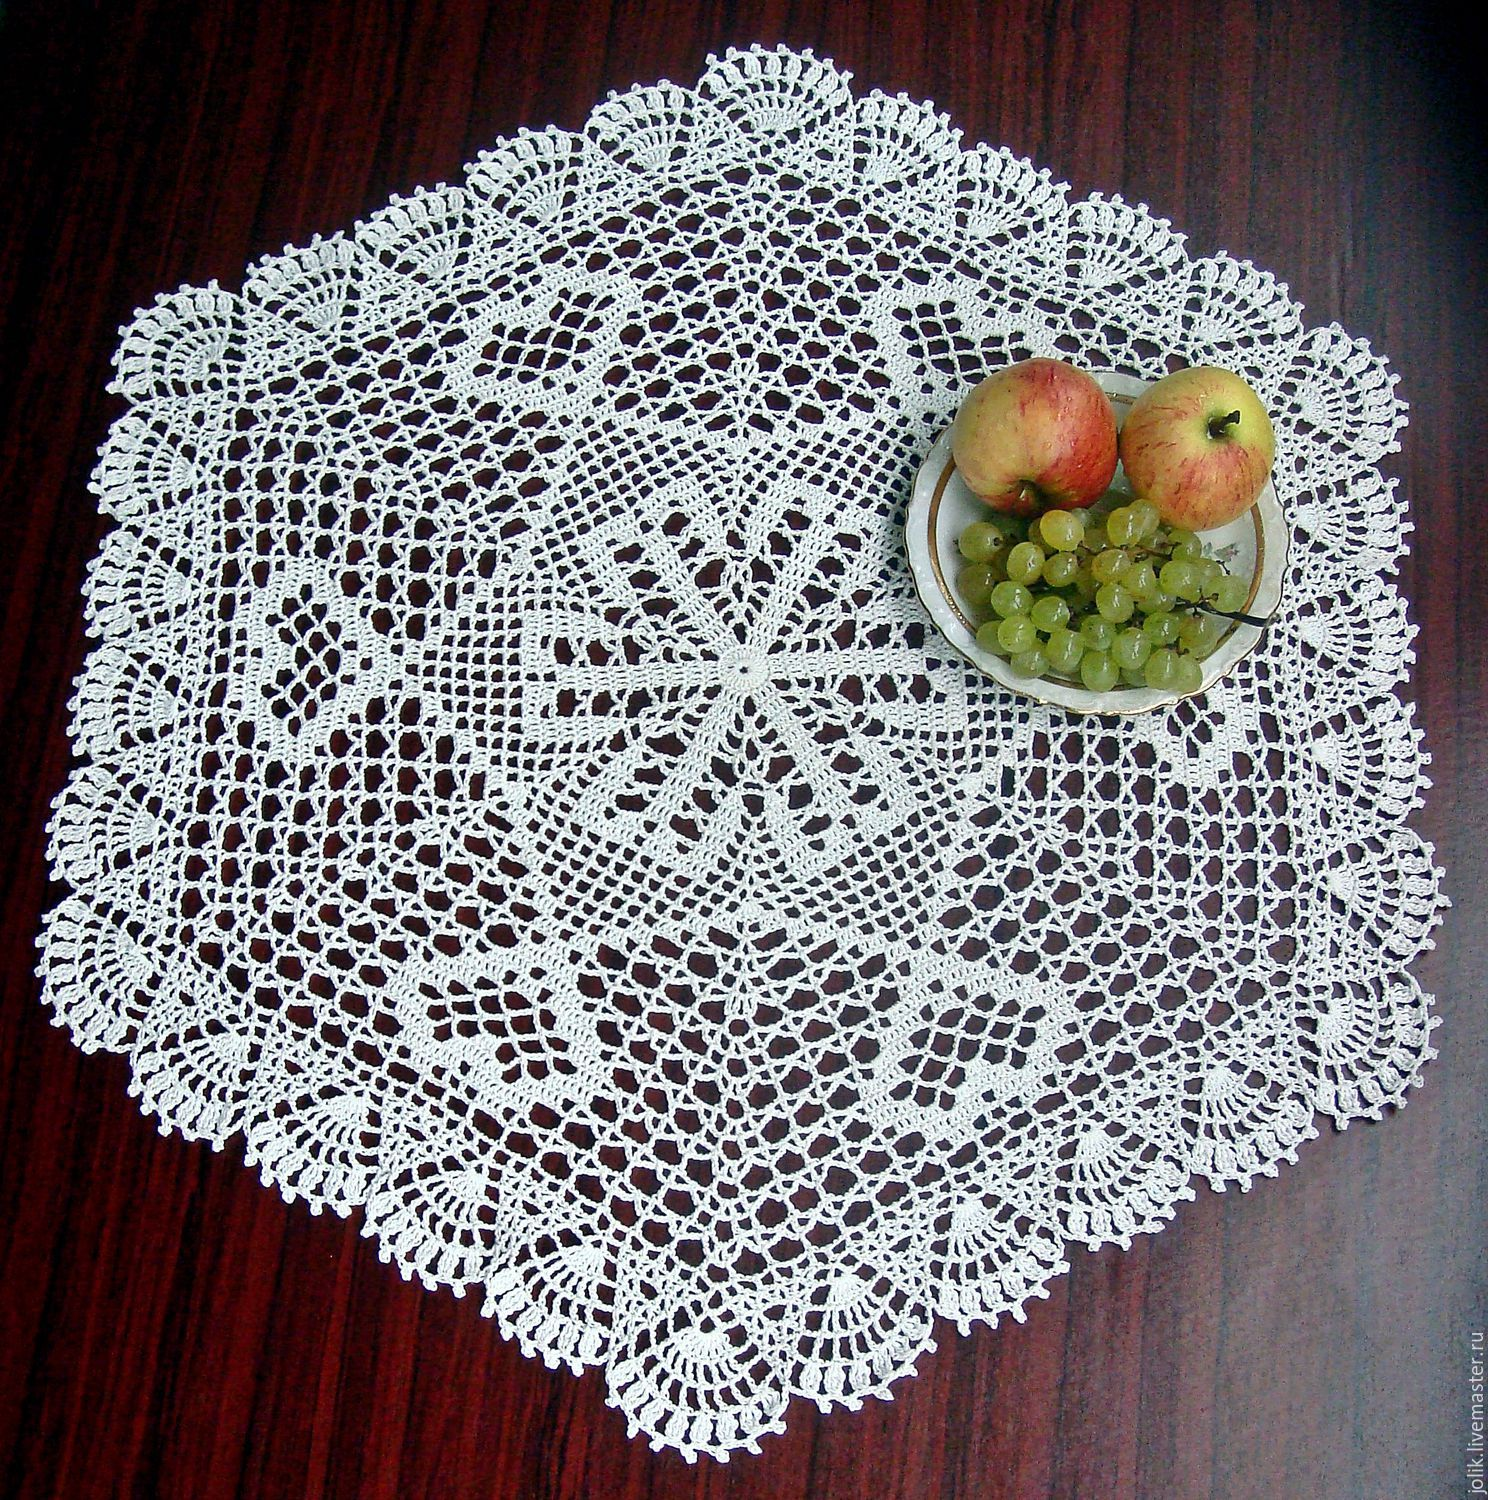 Large Hexagonal Doily Crocheted Shop Online On Livemaster With